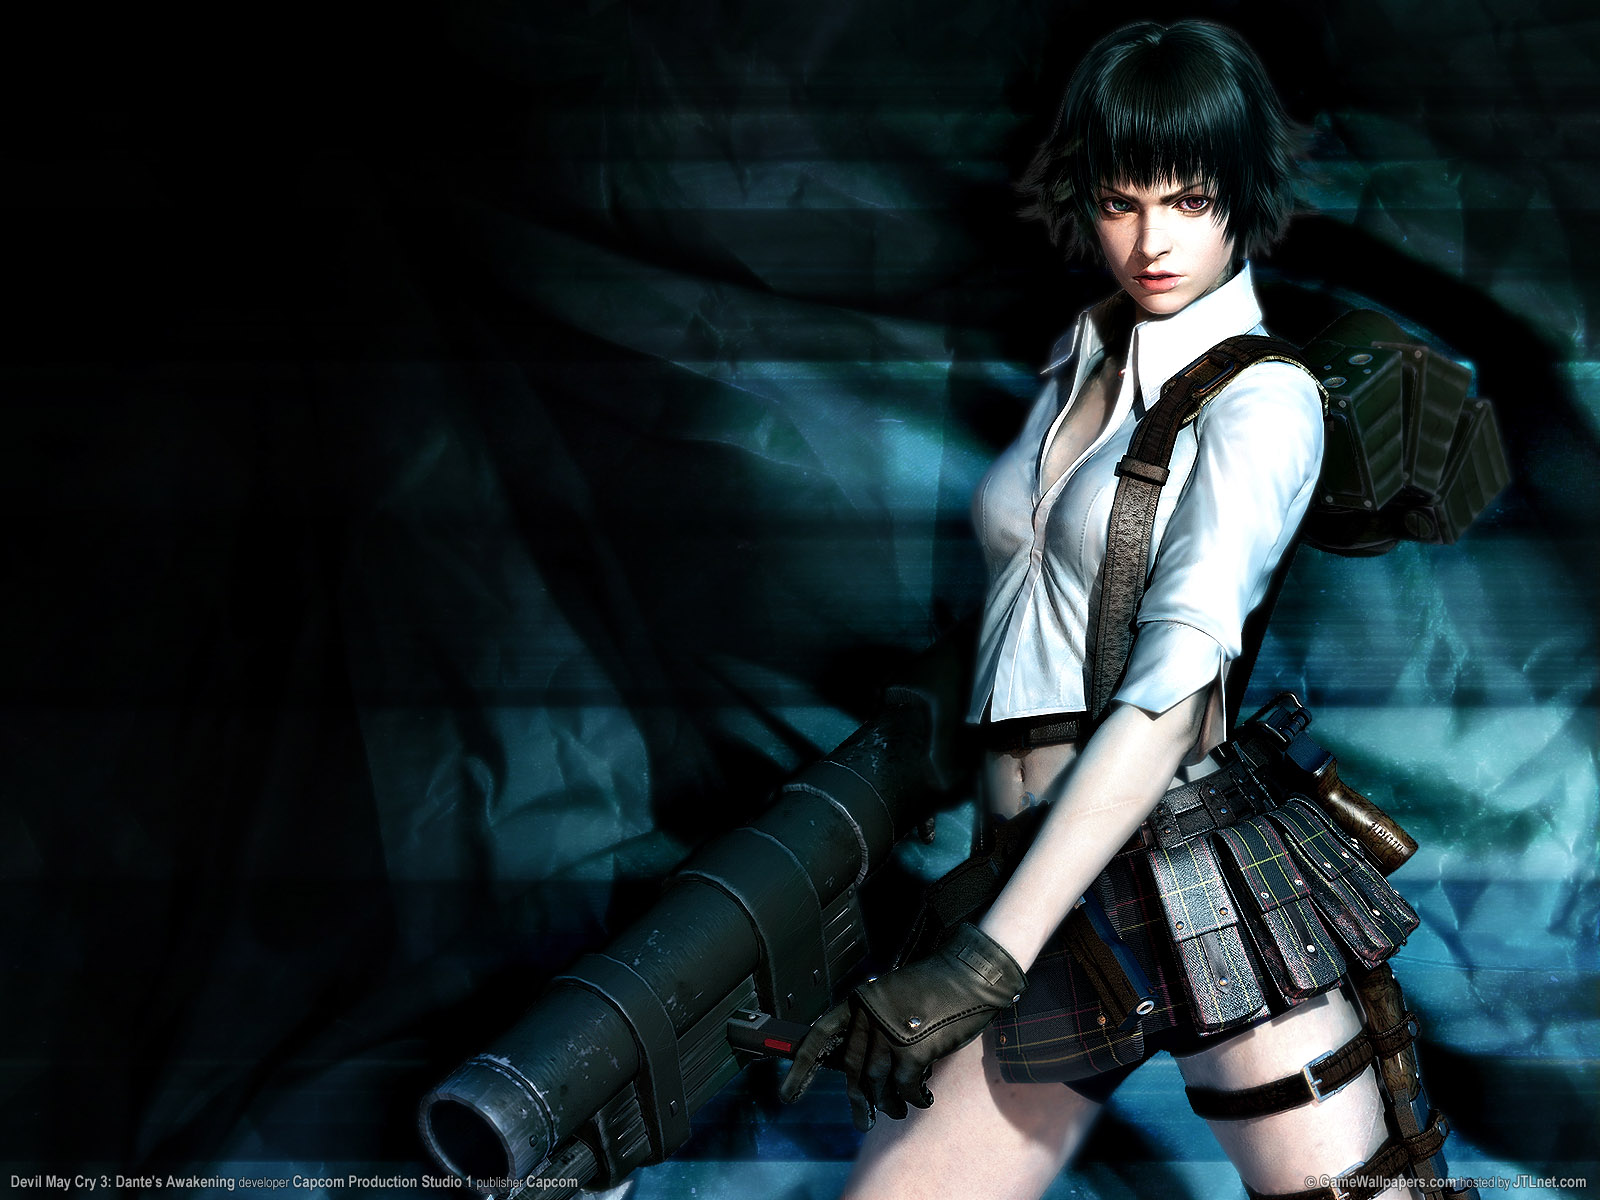 http://3.bp.blogspot.com/-uygMVwRKITY/Tz0hJLxfRTI/AAAAAAAABlQ/dwwatXRT1g0/s1600/wallpaper_devil_may_cry_3_newanimationworld.jpg